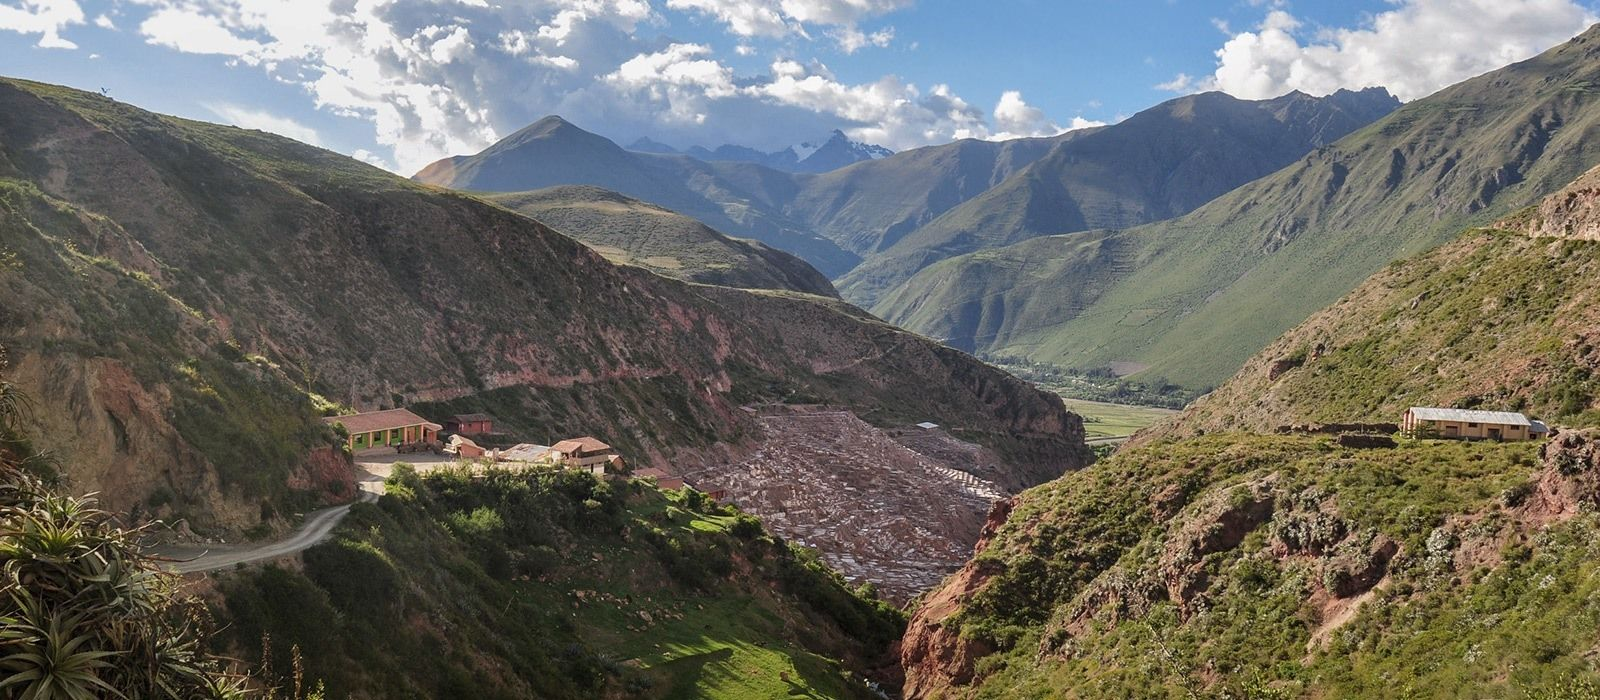 Peru: In the Land of the Incas Tour Trip 2